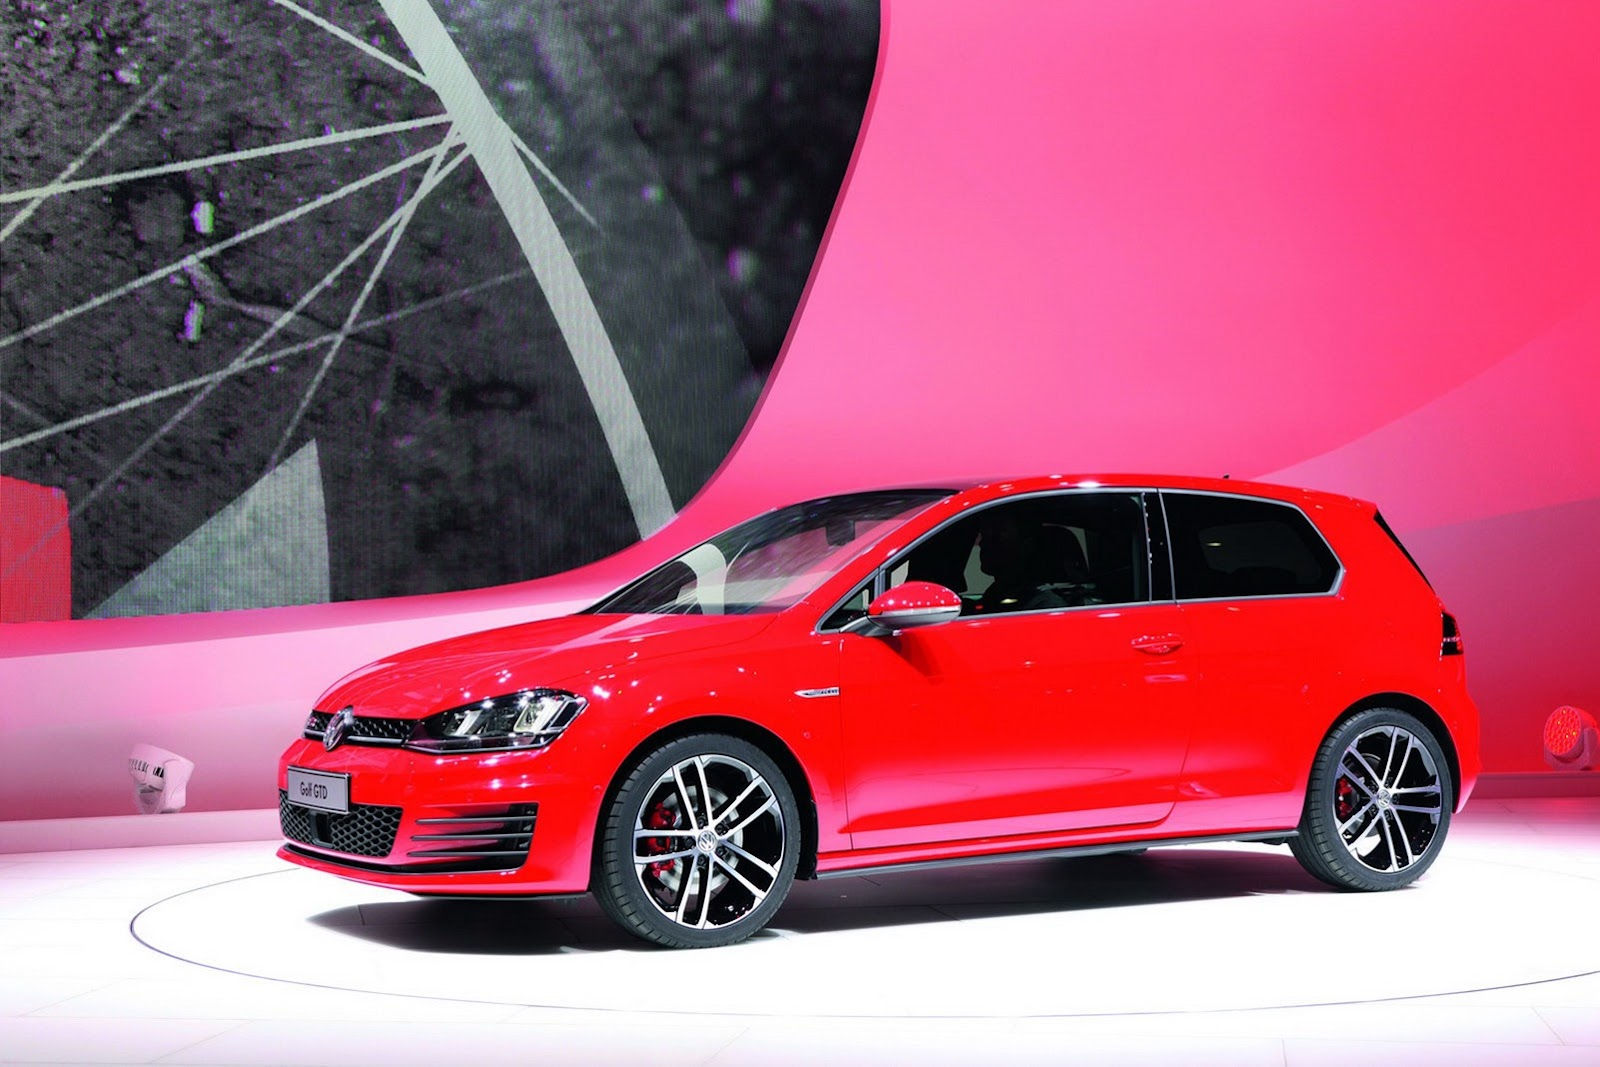 Vw Confirms Us Premiere Of 2015 Golf Hatch And Gti At